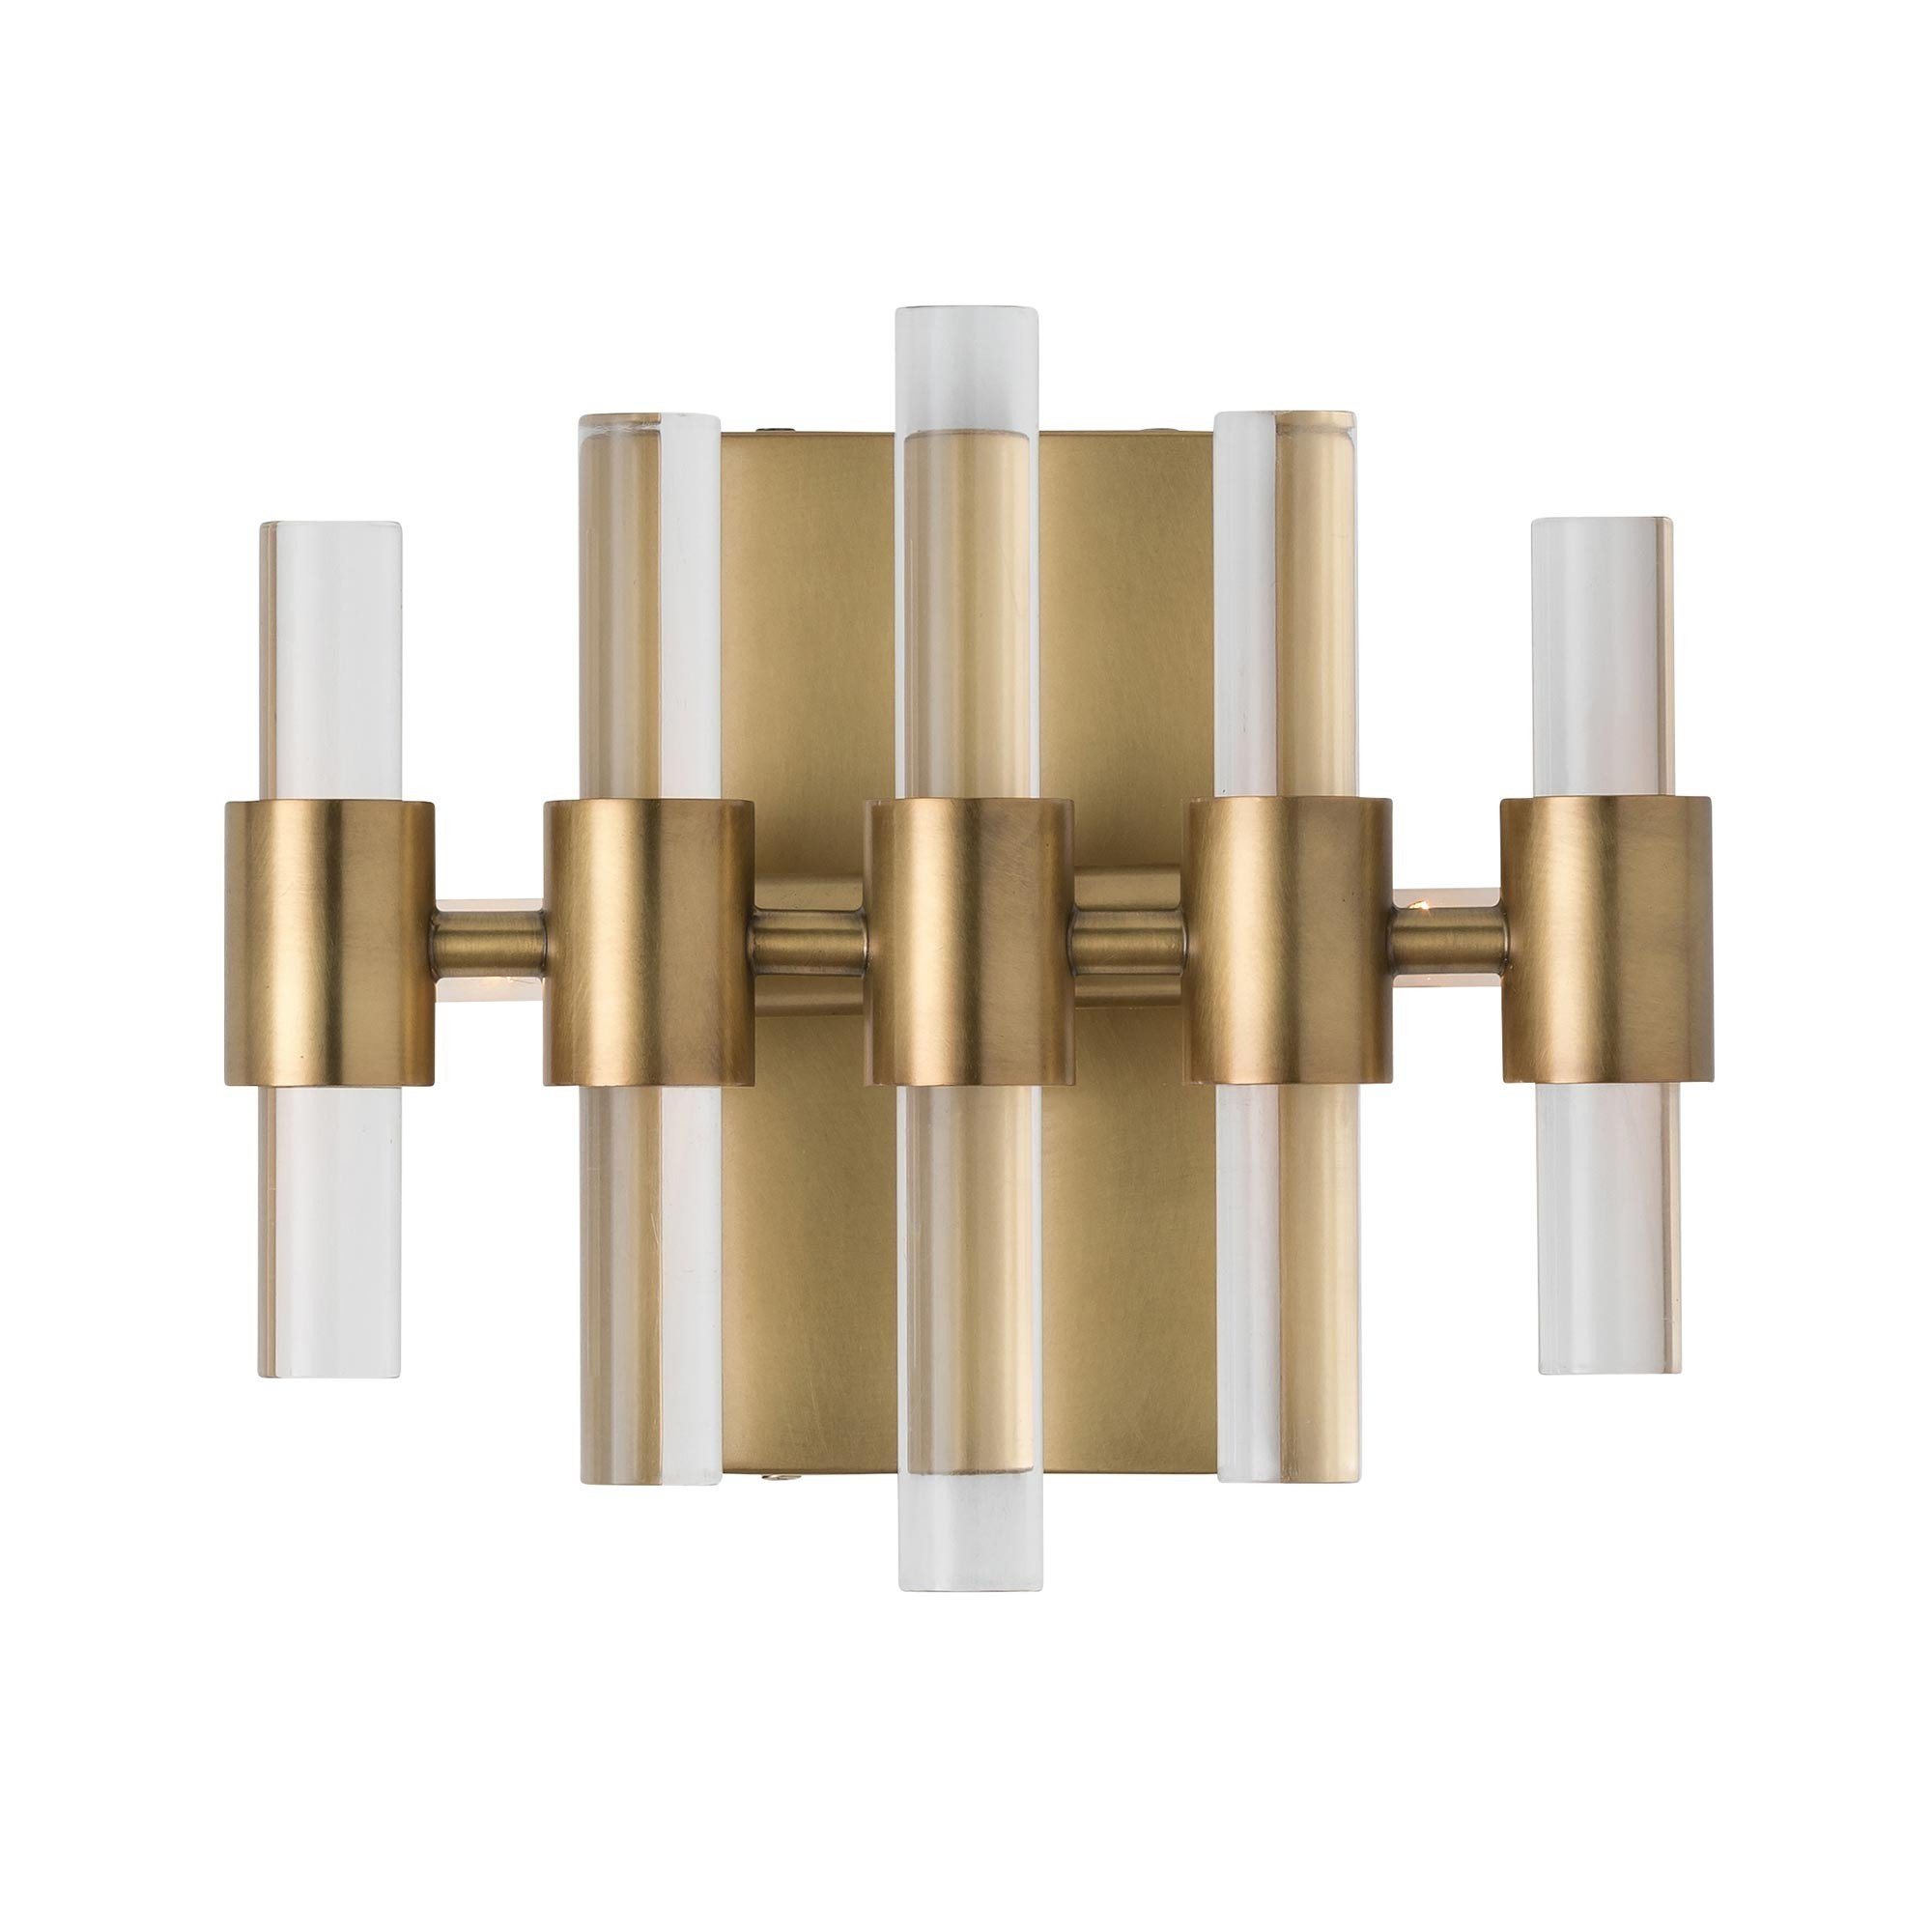 Acco Sconce 16075